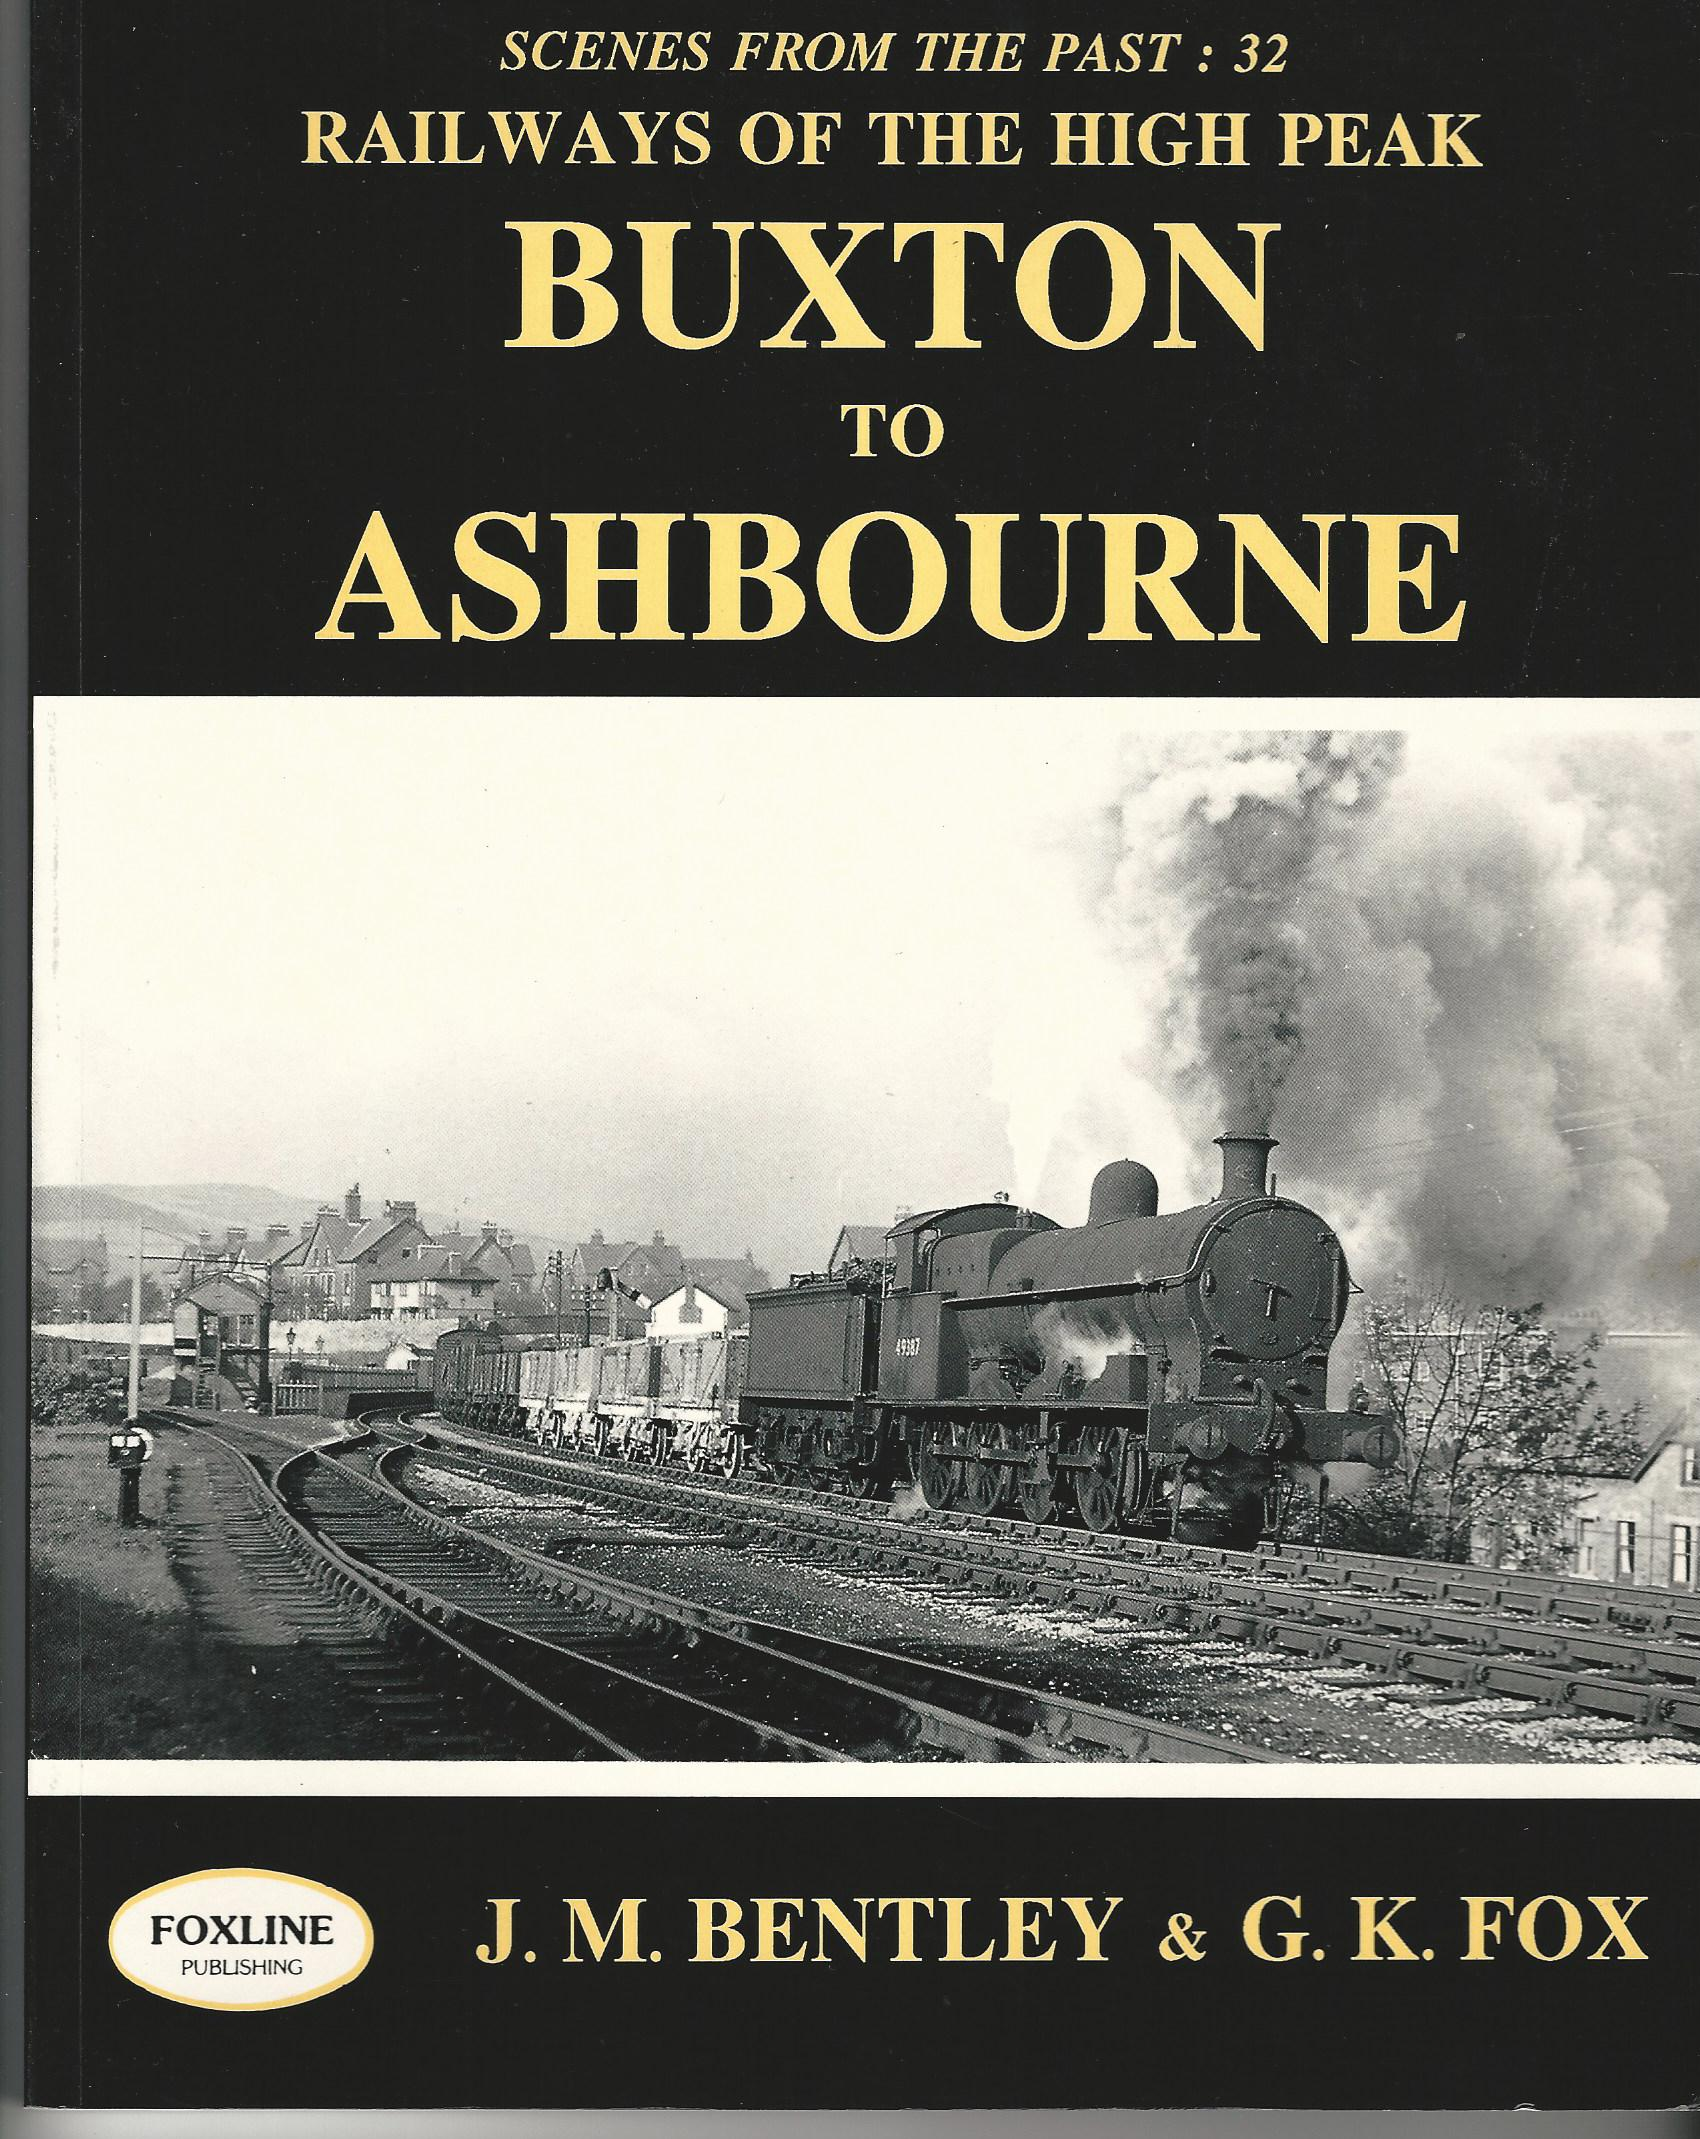 Image for Railways of the High Peak: Buxton to Ashbourne (Scenes from the Past).